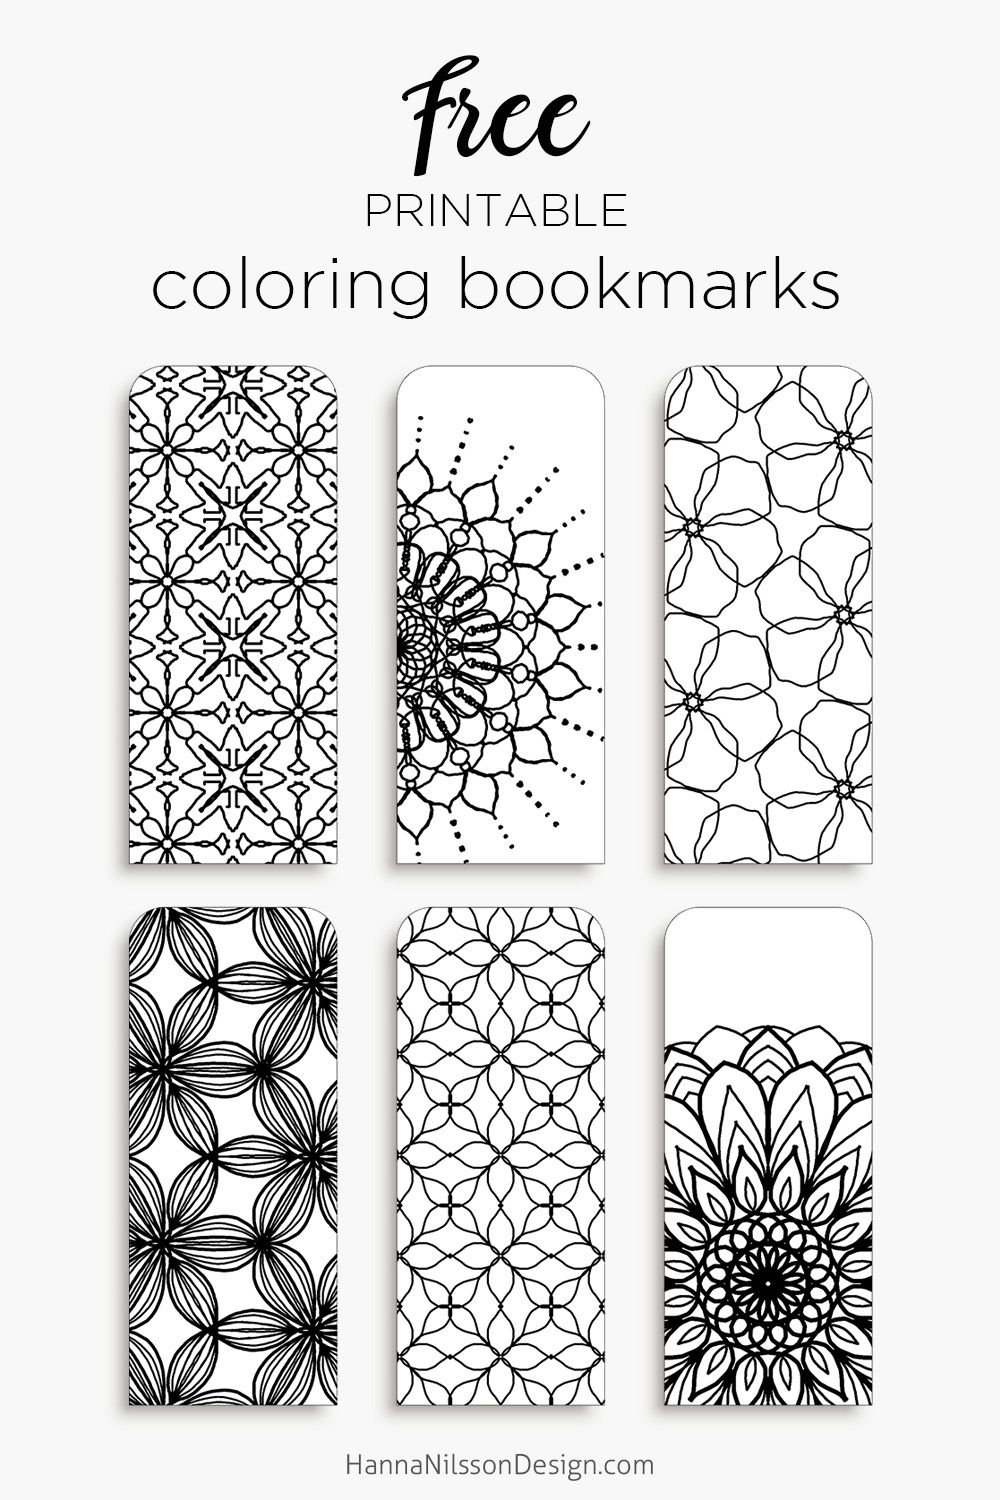 Color Your Own Bookmarks Free Printable Bookmarks For Coloring Just Download And Print Coloring Bookmarks Bookmark Printing Free Printable Bookmarks